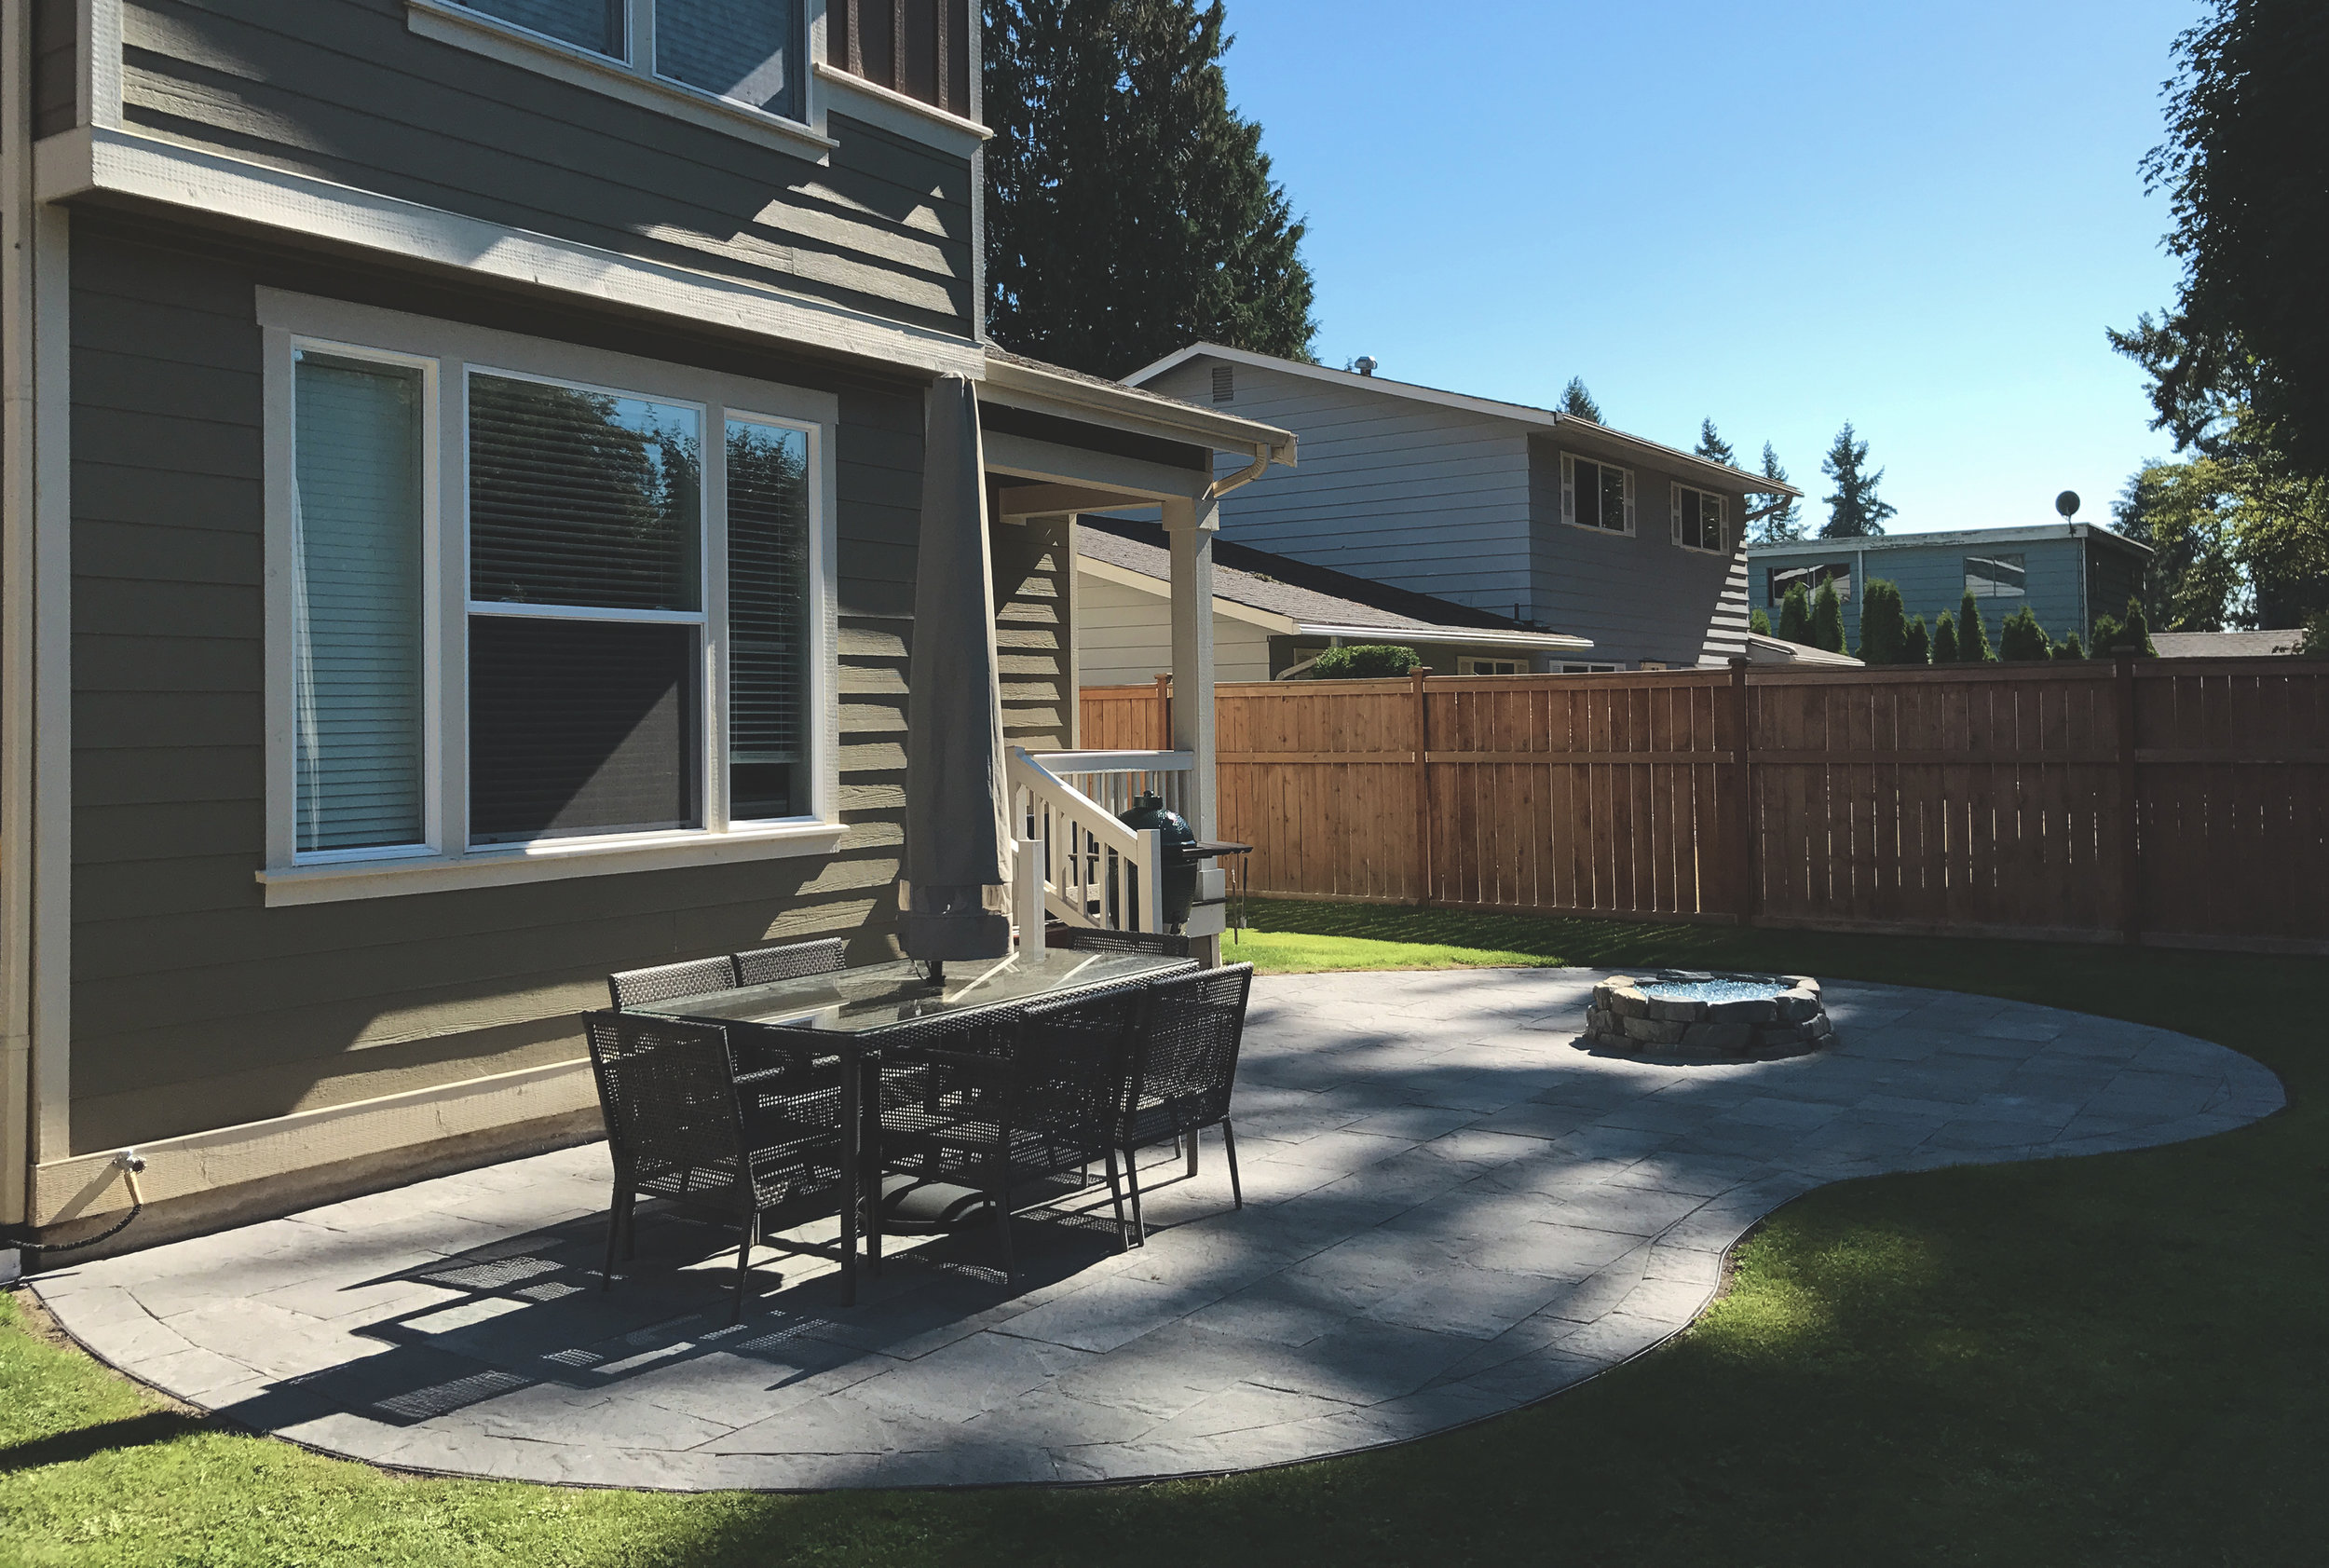 Kidney bean paver patio  (Built with Columbia Slate pavers)